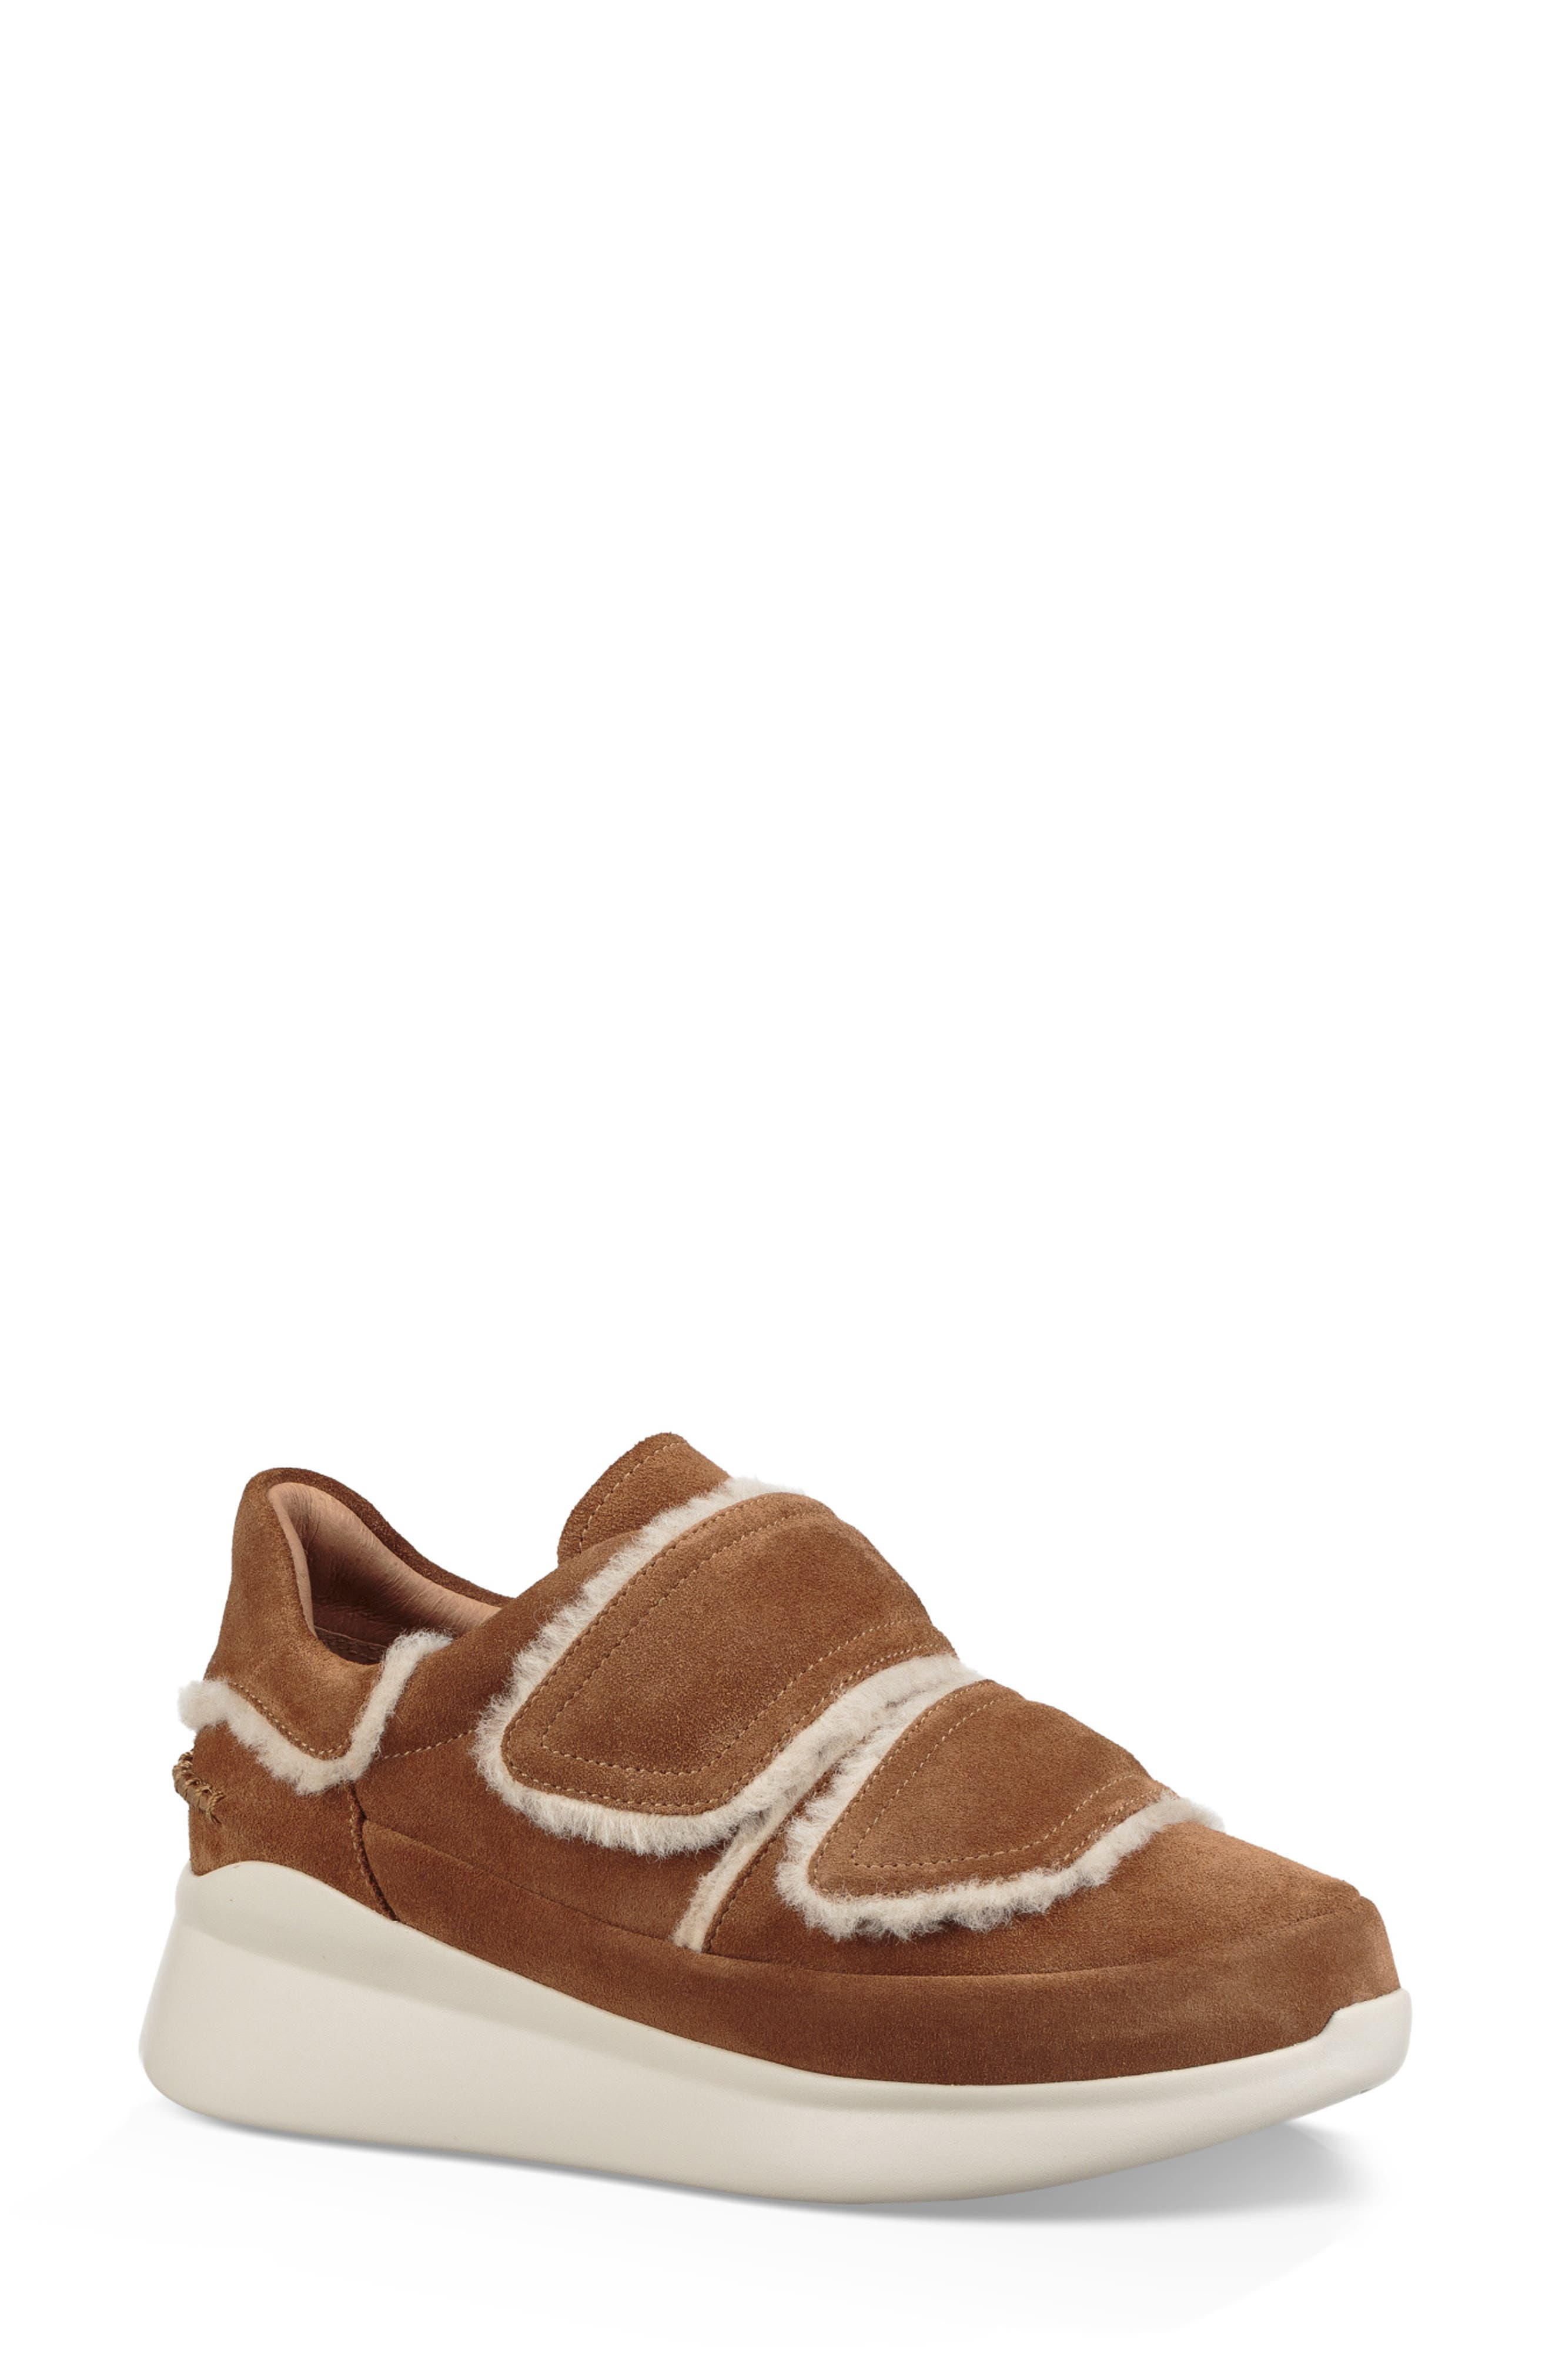 Women'S Ashby Round Toe Fur & Suede Sneaker in Chestnut Leather